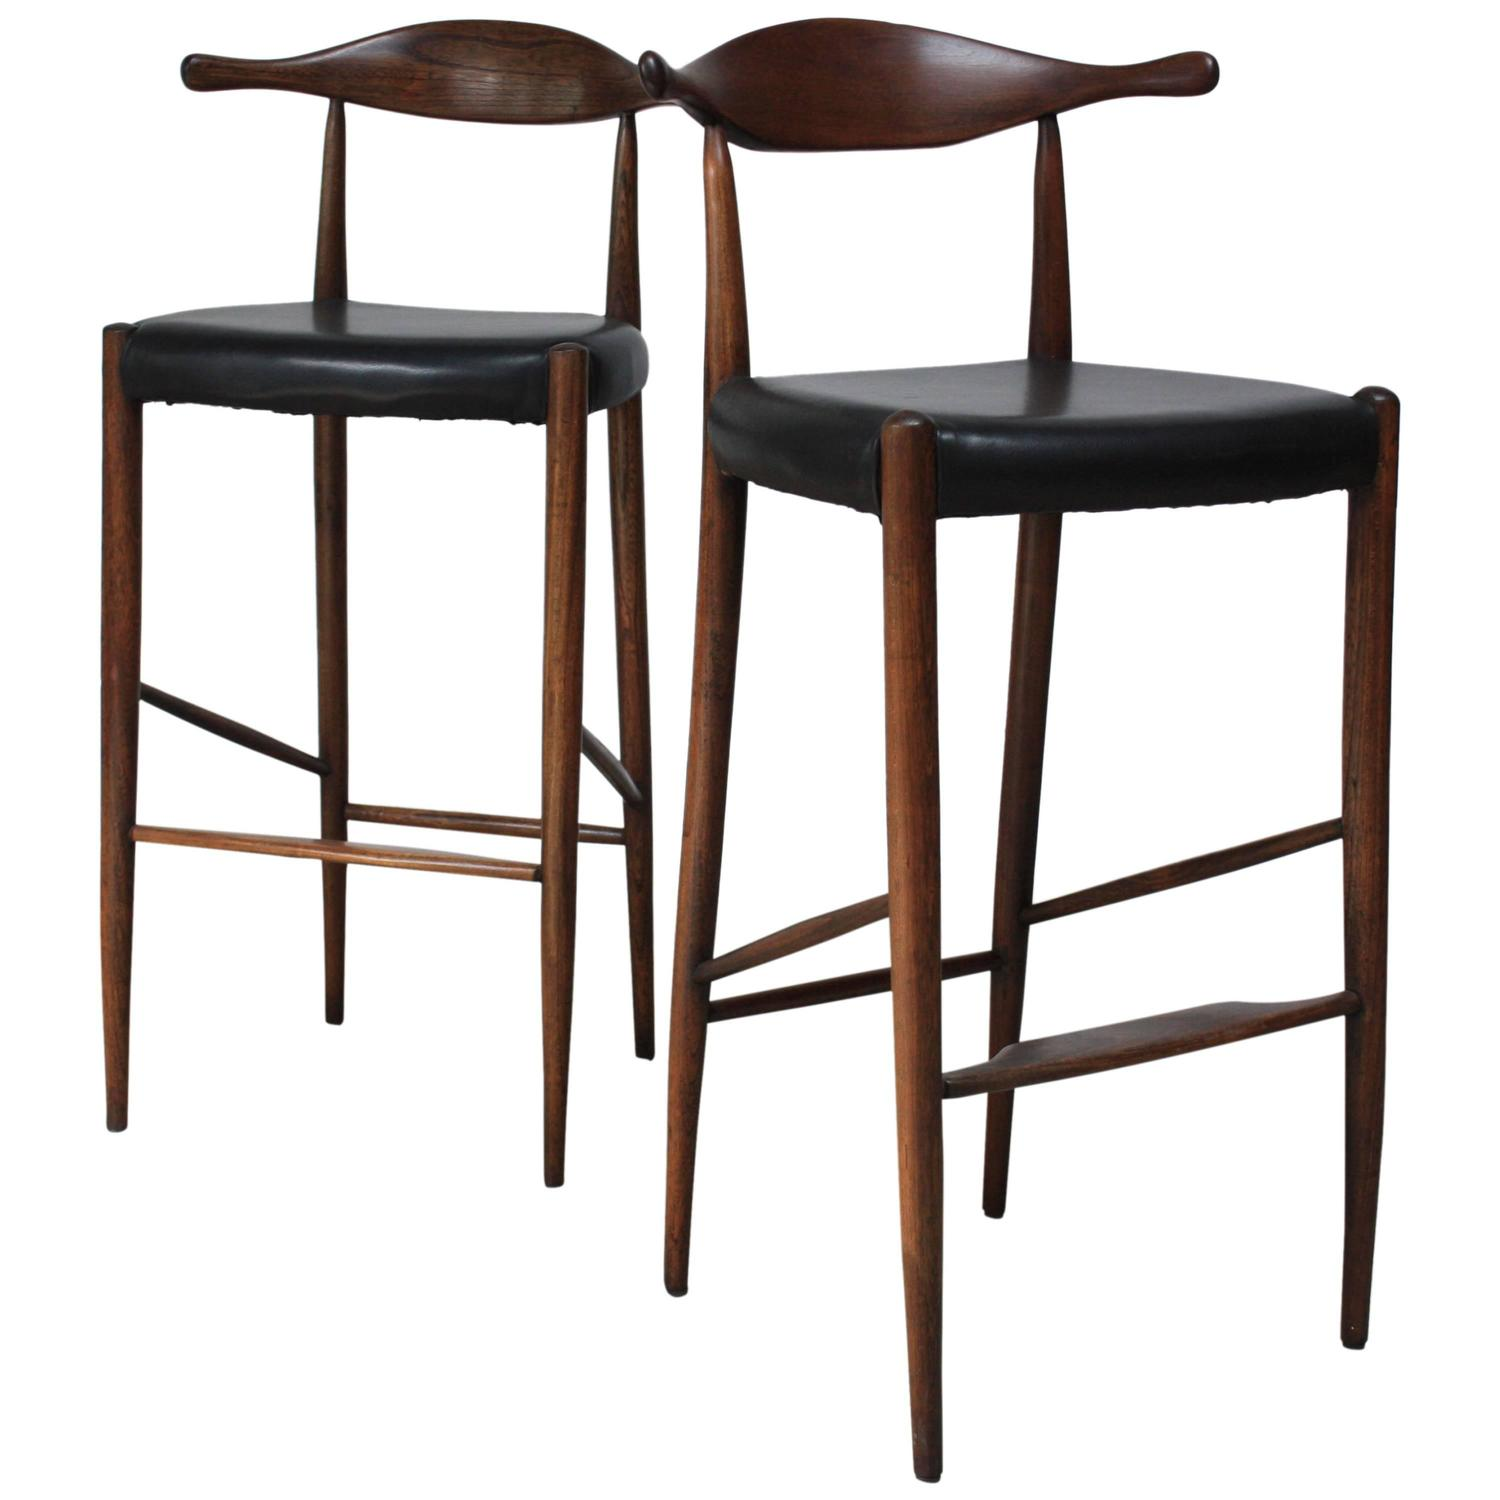 Pair Of Danish Cow Horn Bar Stools In Teak And Leather